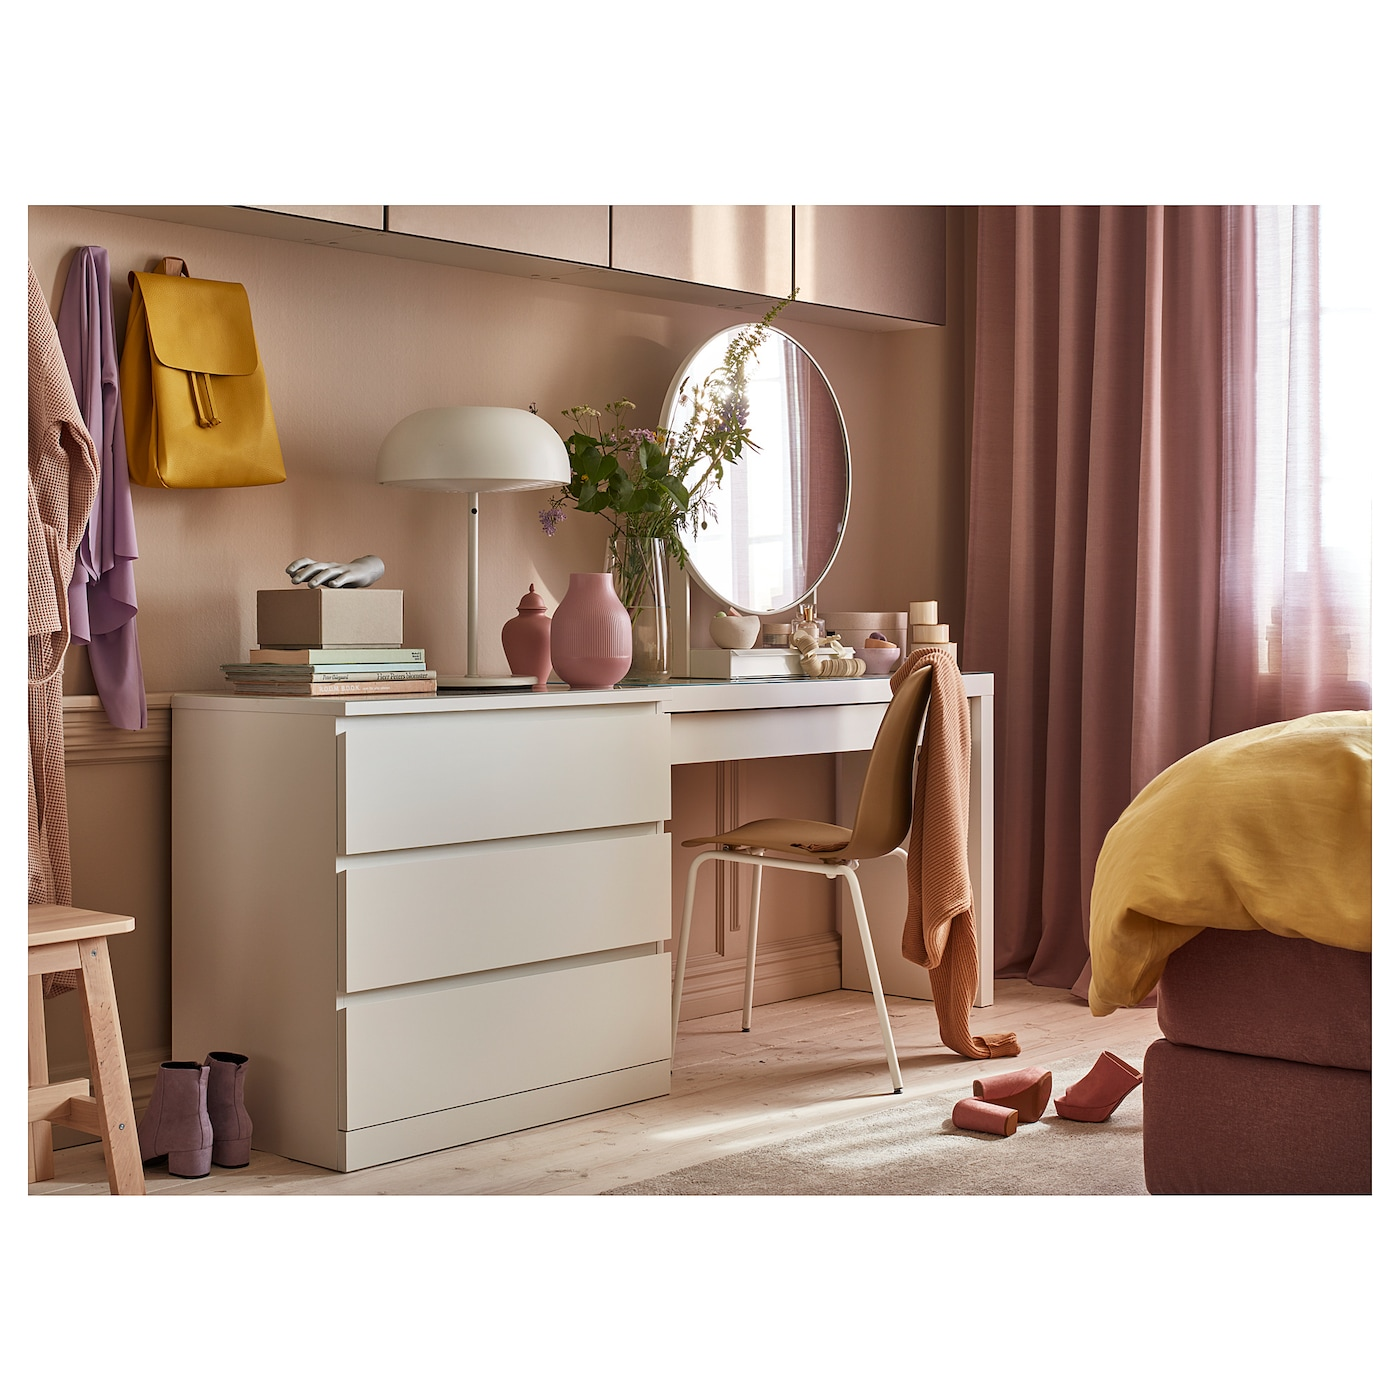 "MALM Dressing table - white 1000 100/100x1006 100/10 "" (10020x100100 cm)"